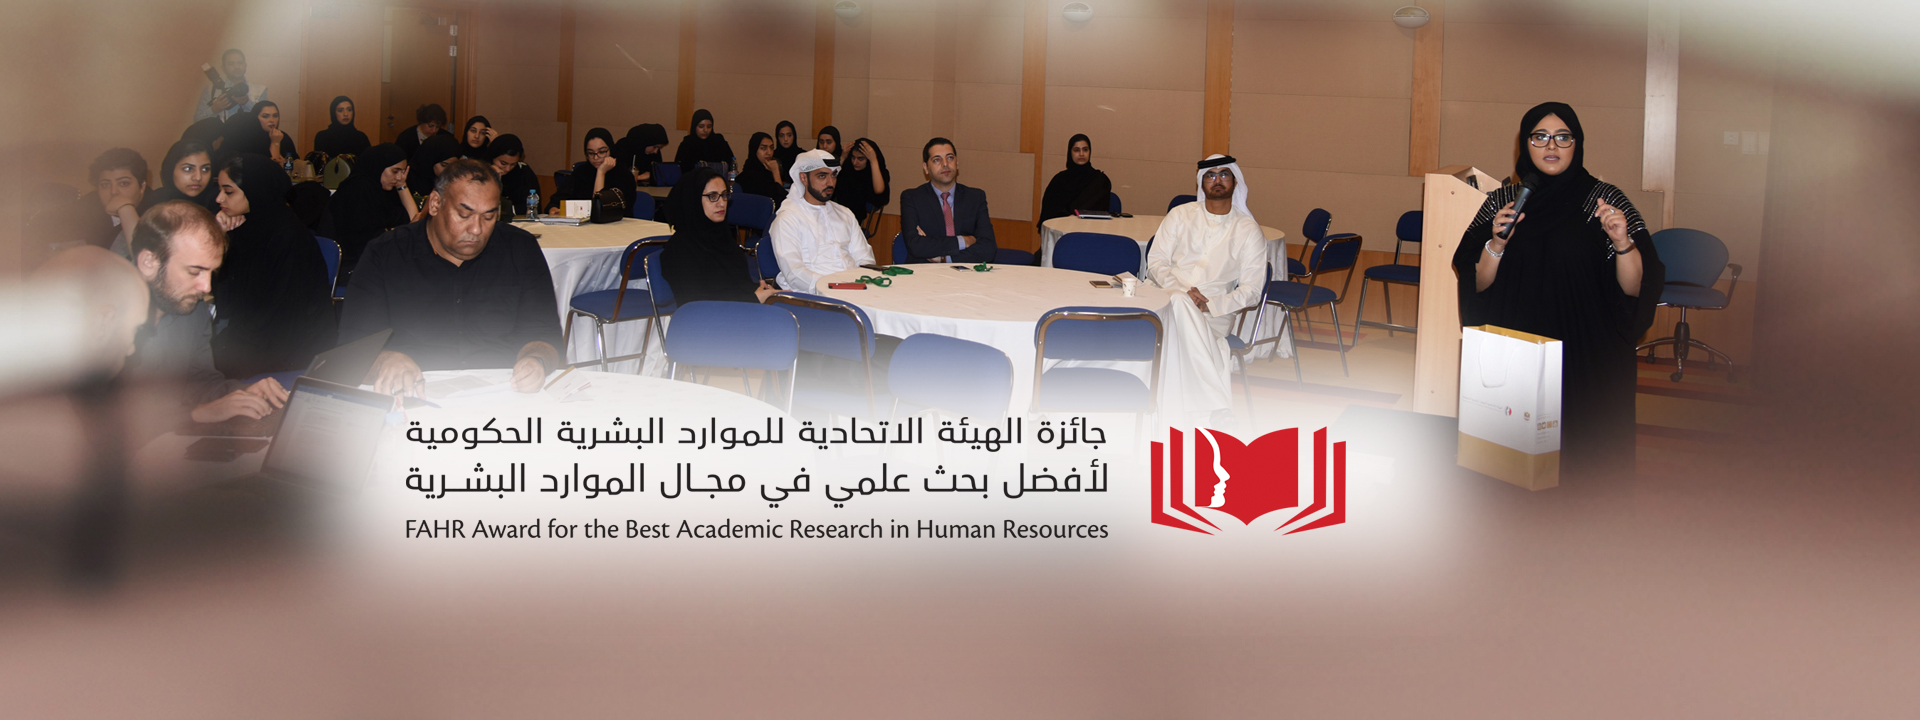 FAHR Award for Best Academic Research on HR Resources